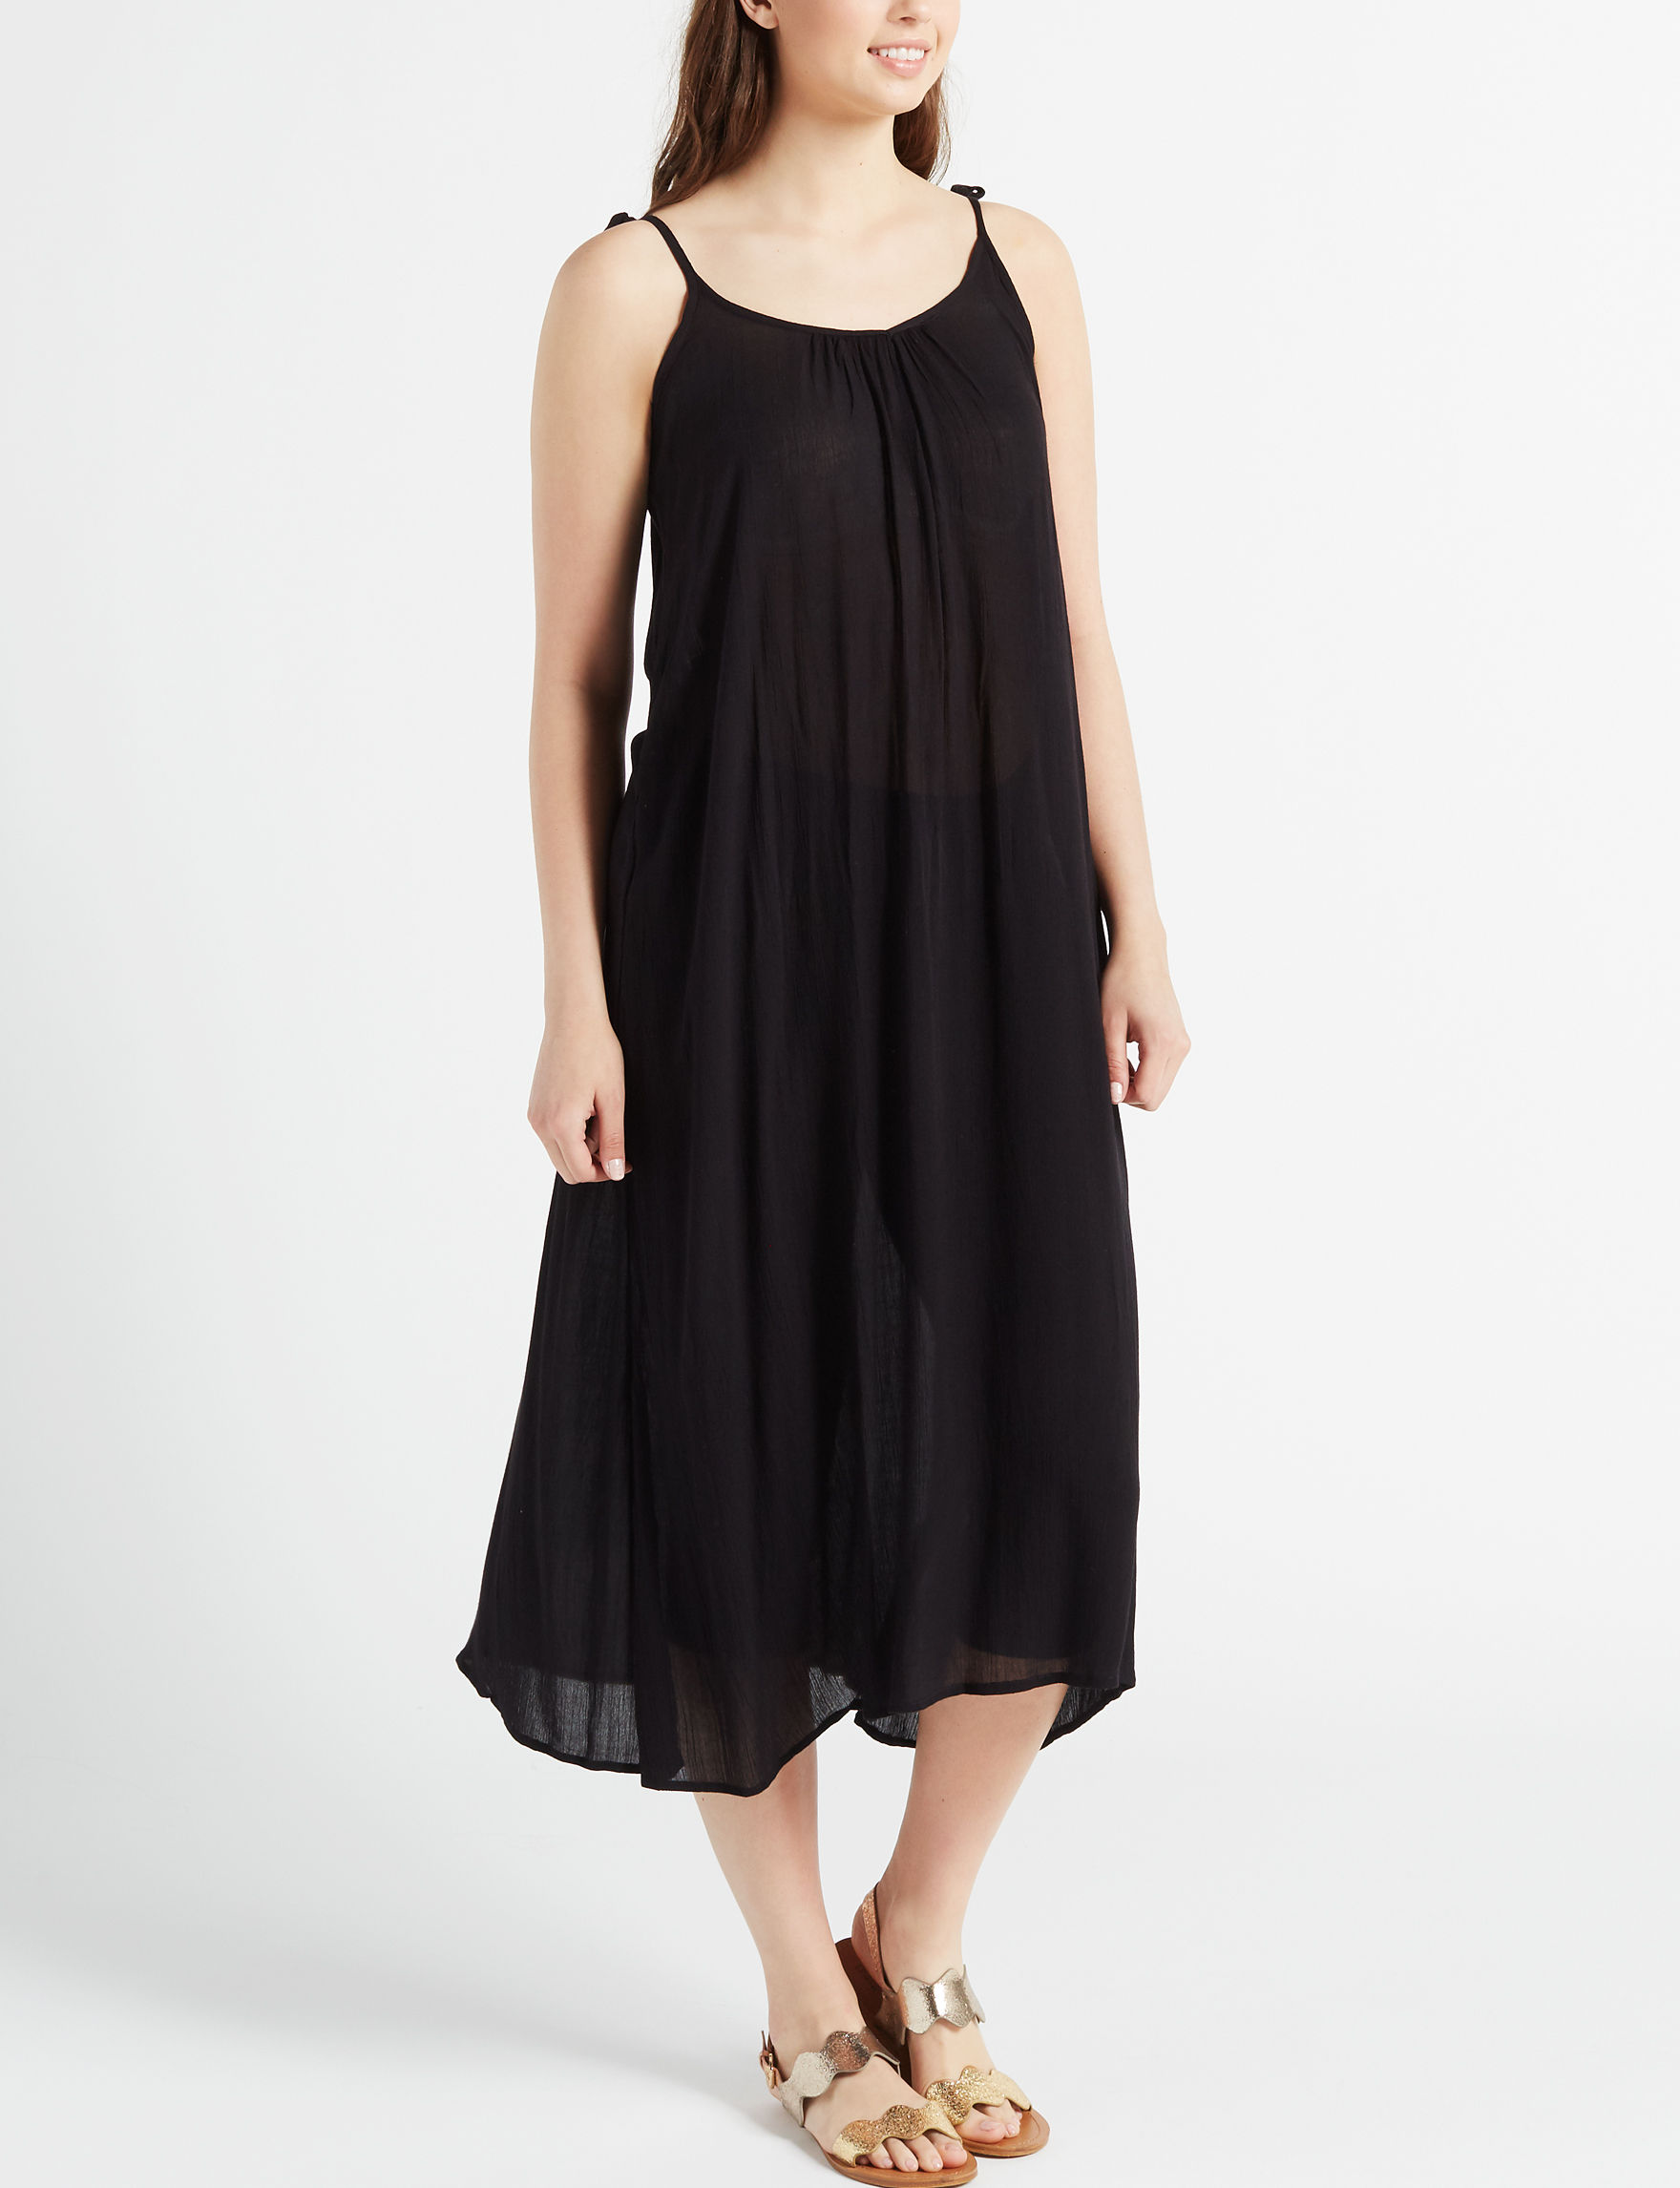 Poof Black Everyday & Casual Maxi Dresses